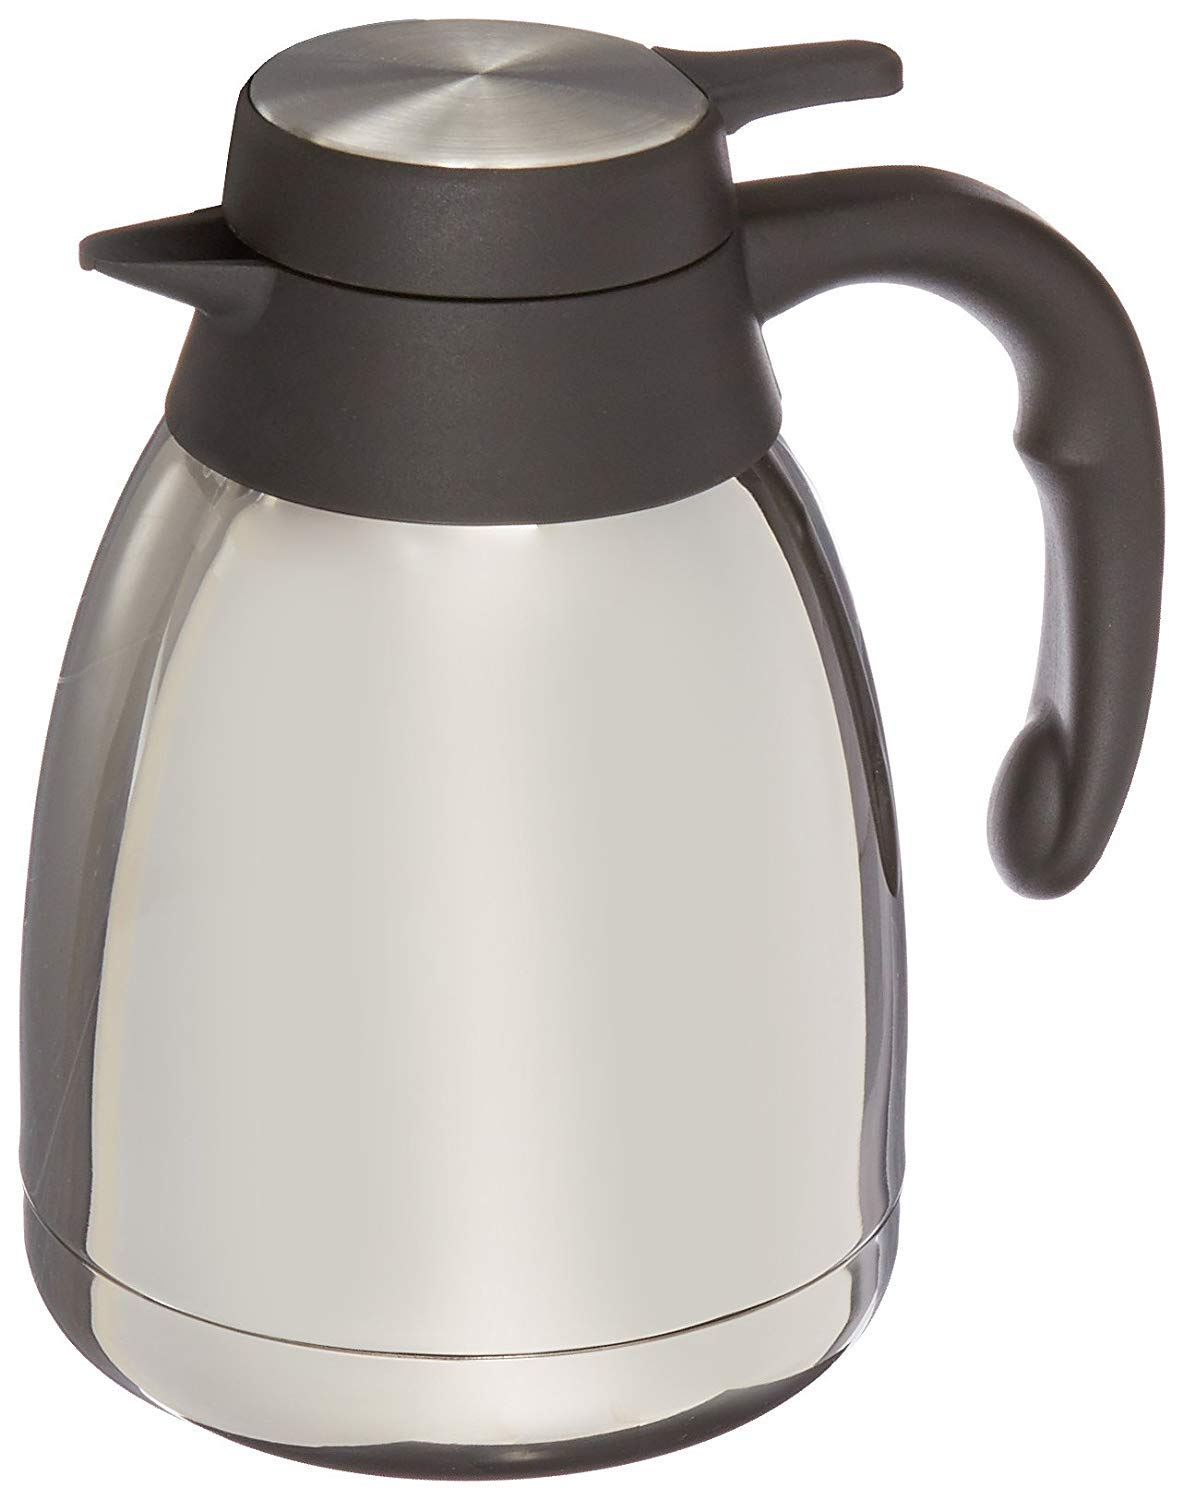 Genuine Joe GJO11952 Stainless Steel, Mirror-Finish Classic Vacuum-Insulated Carafe with Thumb Lever Lid, 1.2L Capacity, Steel/Gray (2-Units) by Genuine Joe